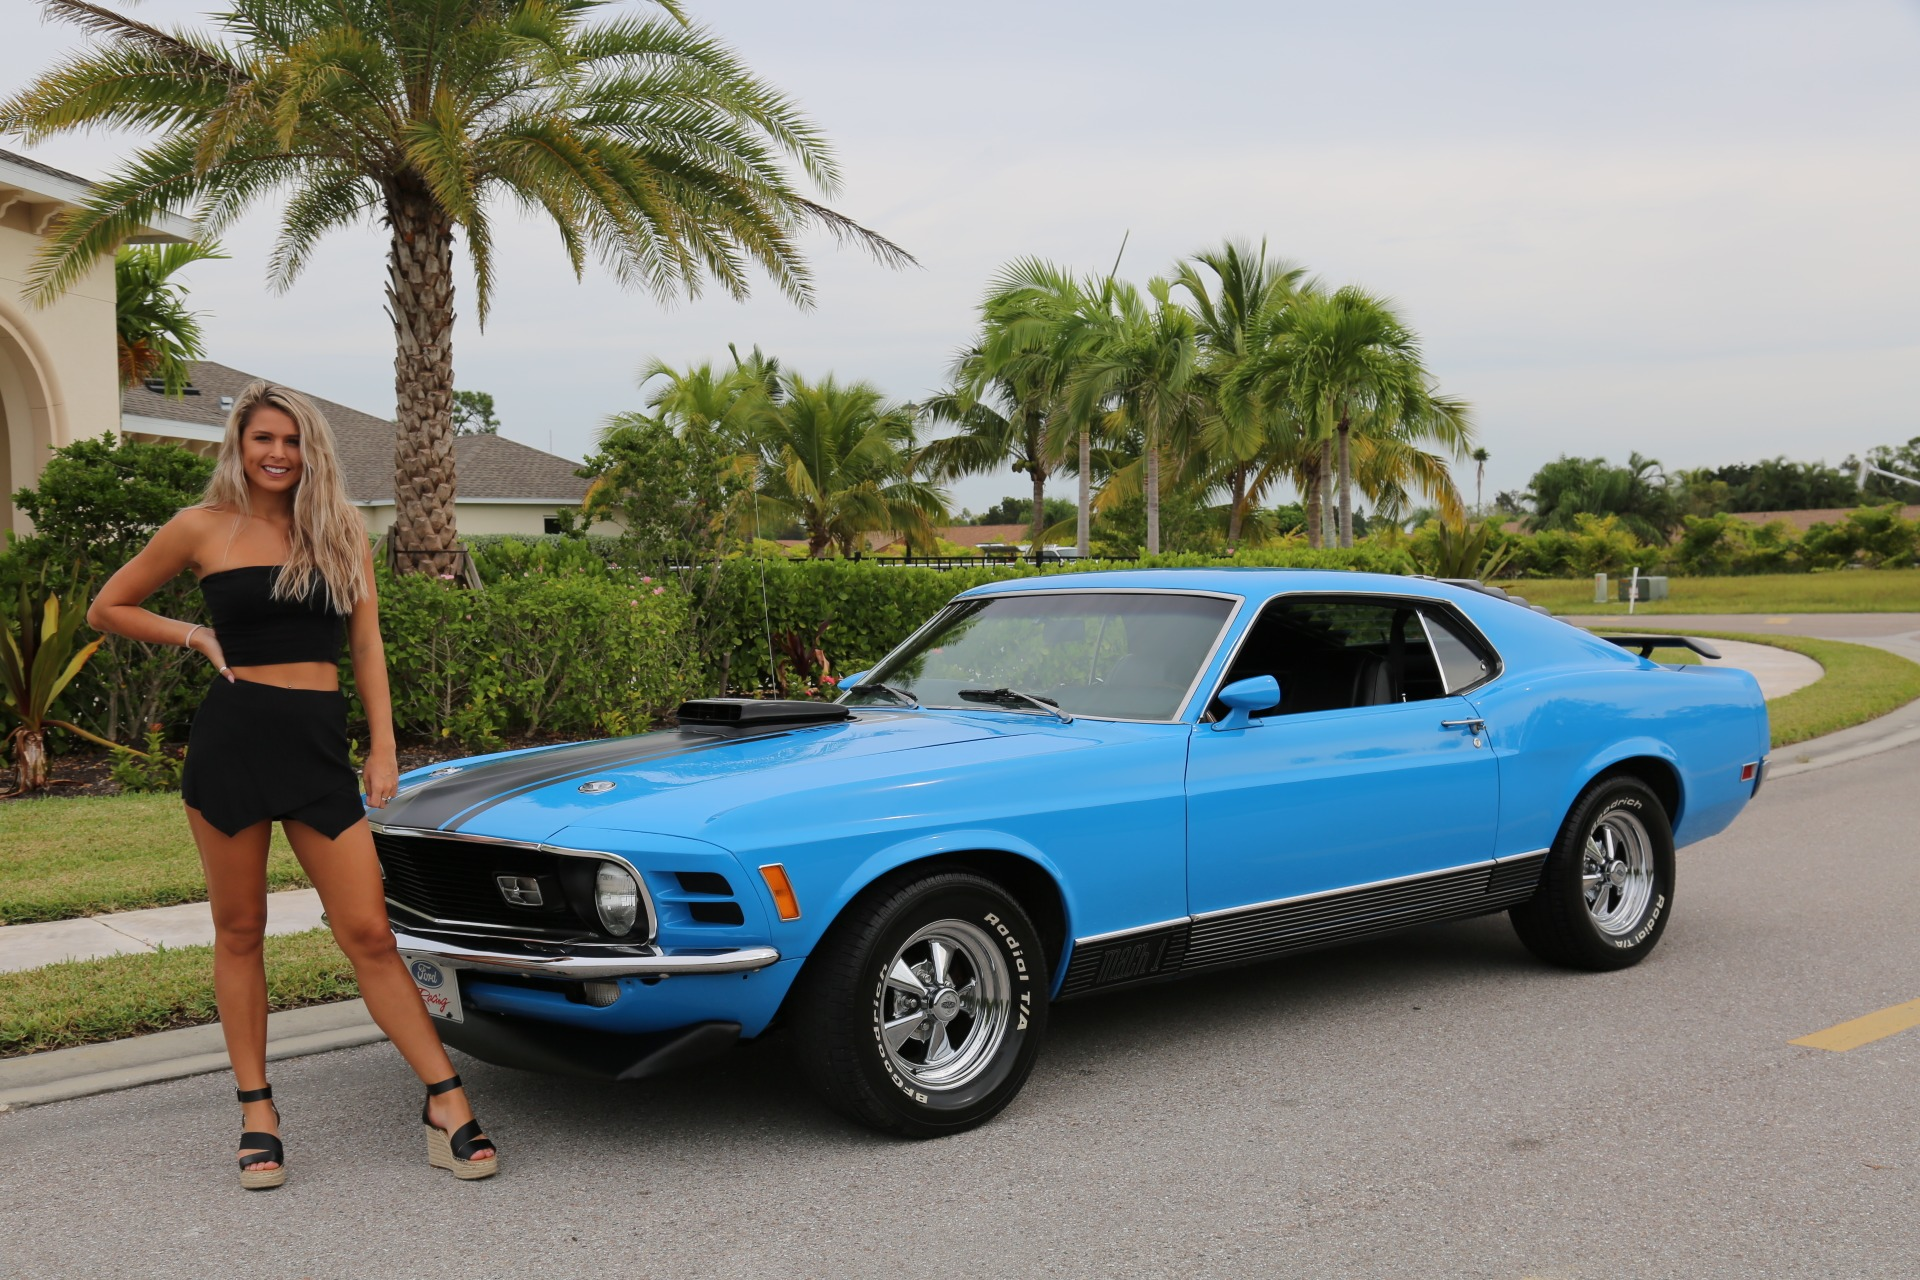 Used 1970 Ford Mustang Mach 1 for sale Sold at Muscle Cars for Sale Inc. in Fort Myers FL 33912 1